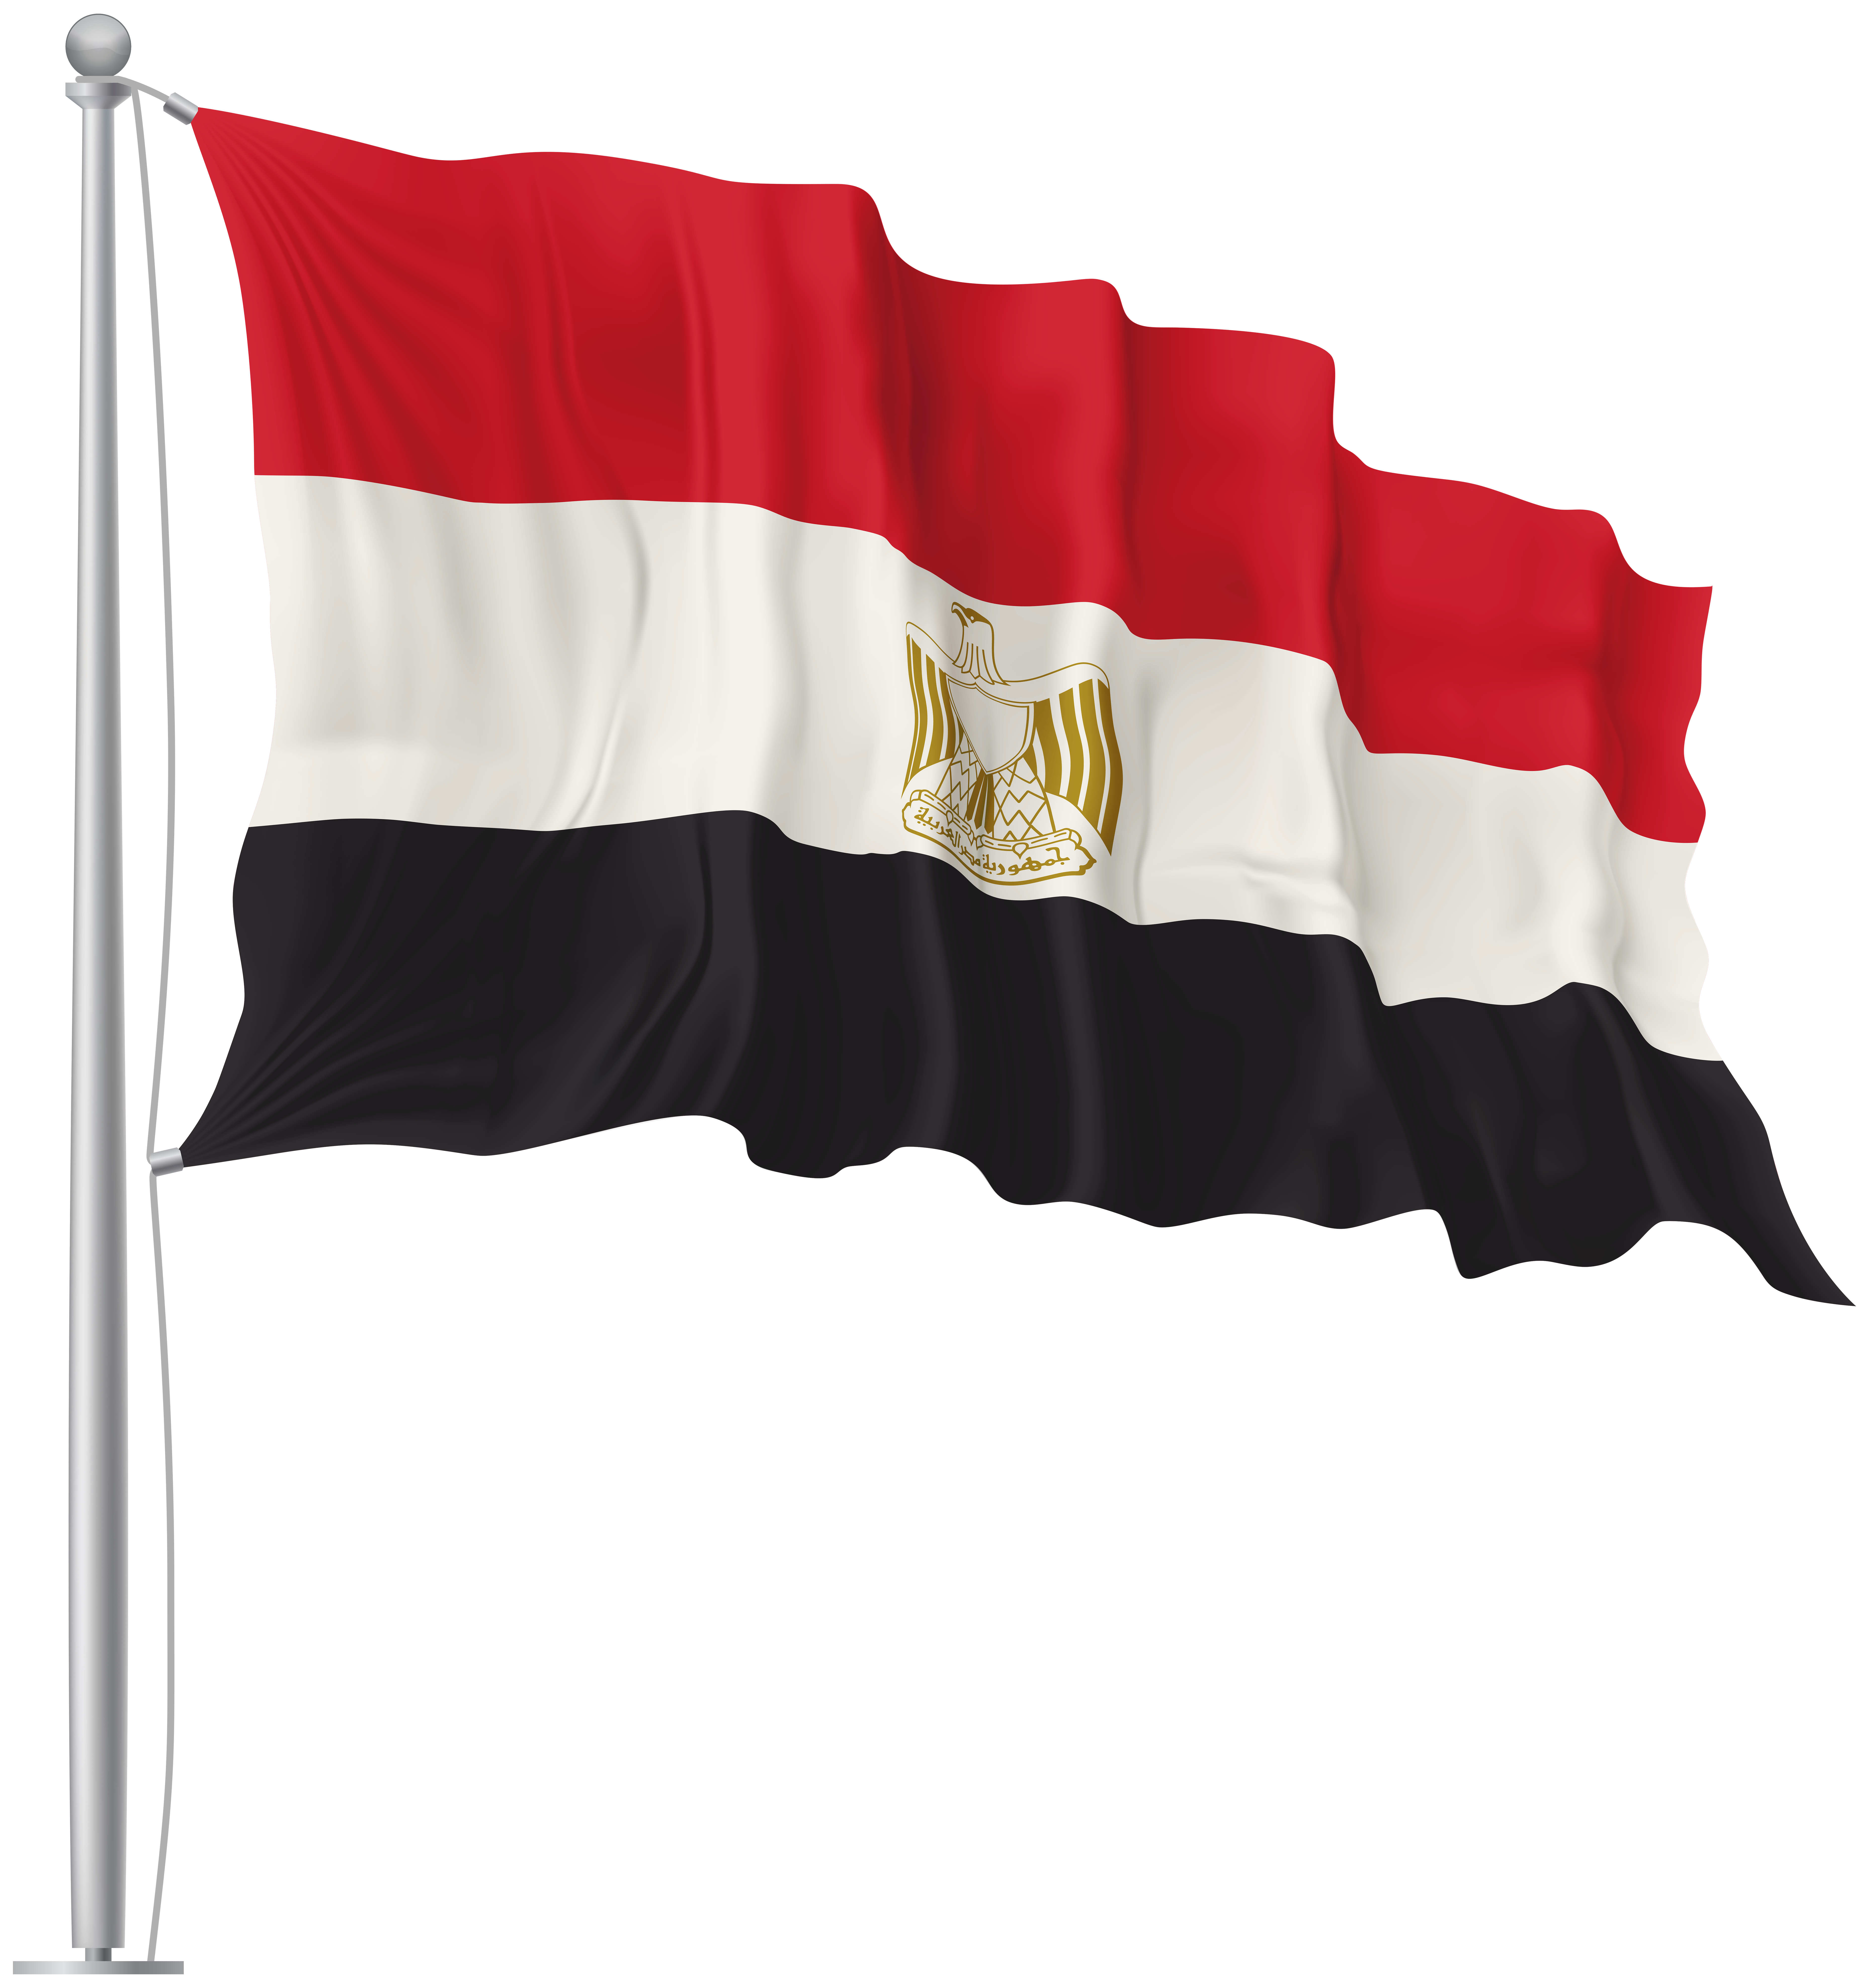 Egypt flag clipart graphic royalty free library Egypt Waving Flag PNG Image   Gallery Yopriceville - High-Quality ... graphic royalty free library